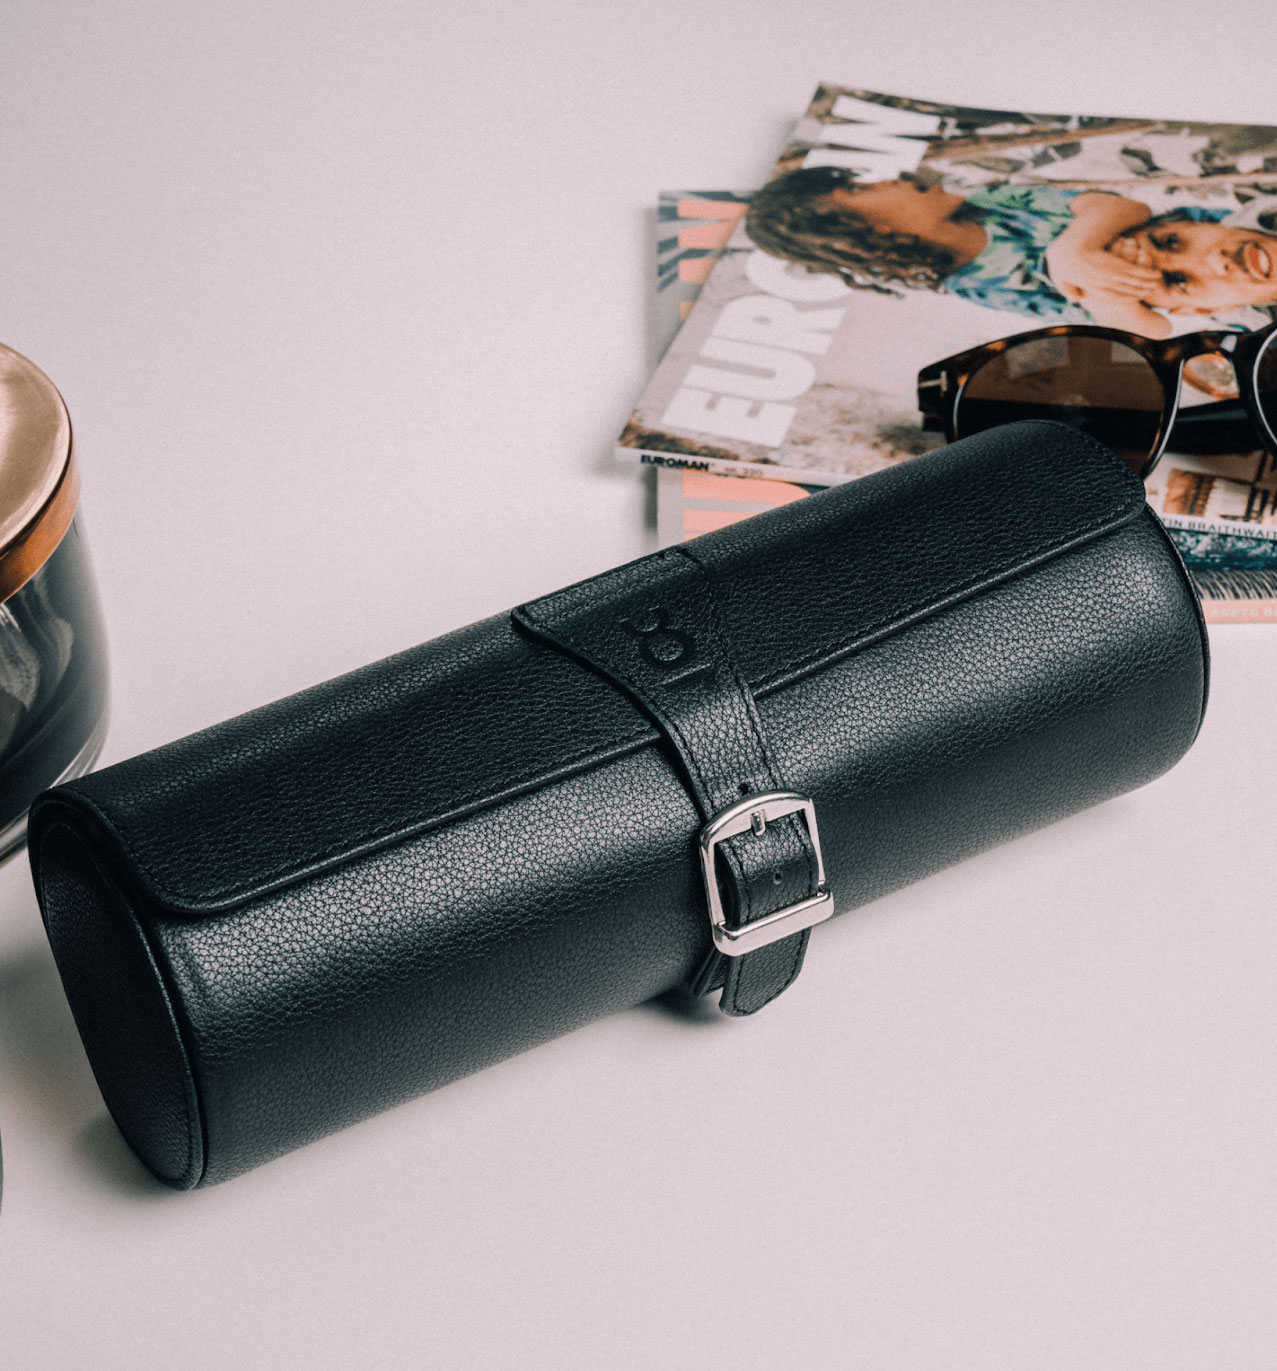 The Travel Leather Watch Roll